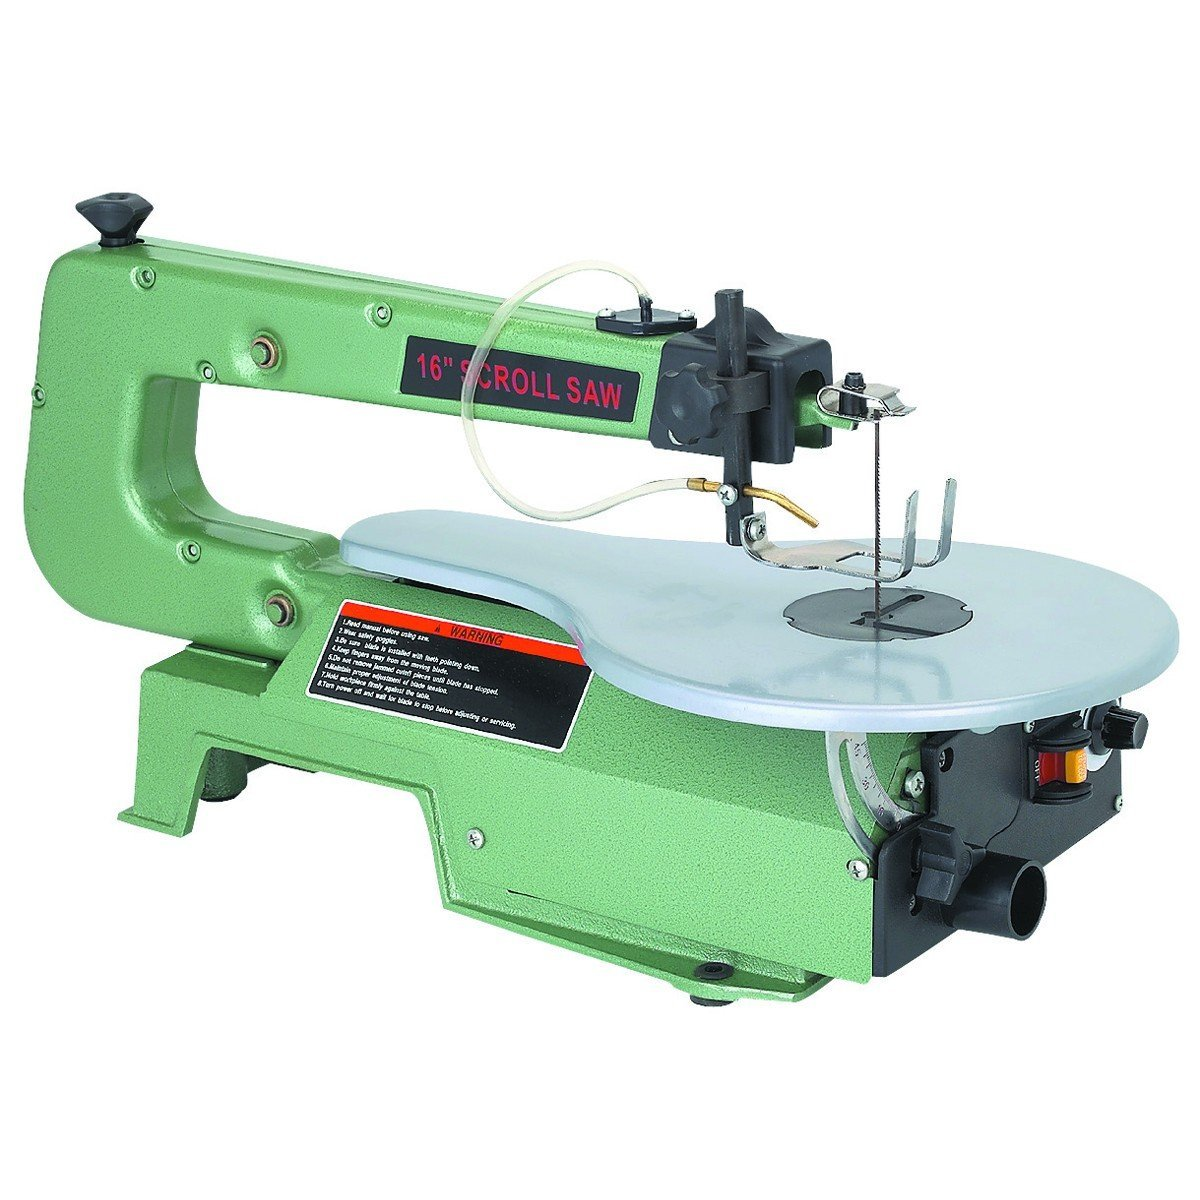 16in Variable Speed Scroll Saw by HF tools by